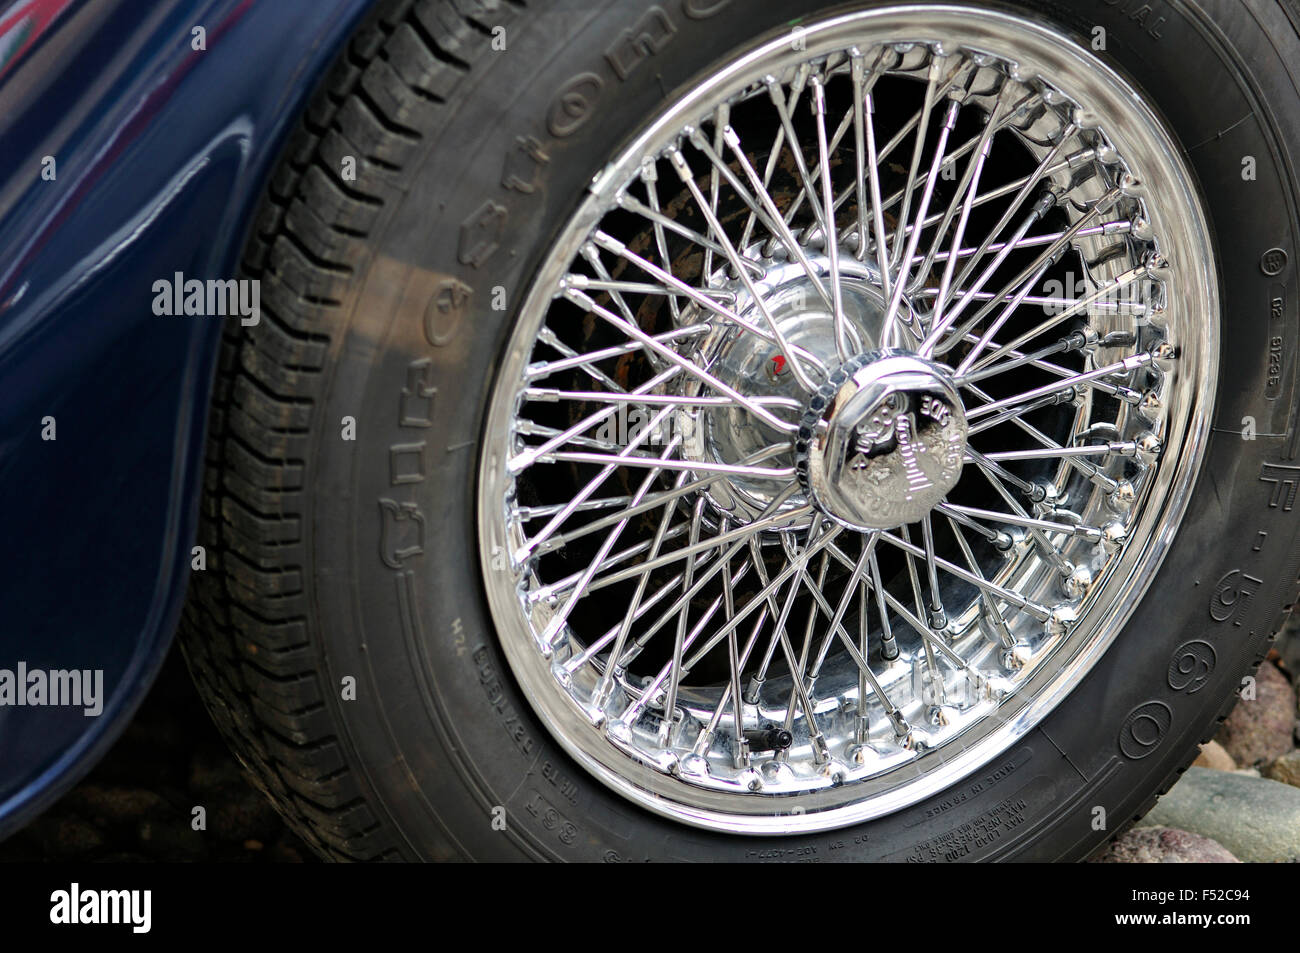 Vintage Car Wheel Stock Photos & Vintage Car Wheel Stock Images - Alamy